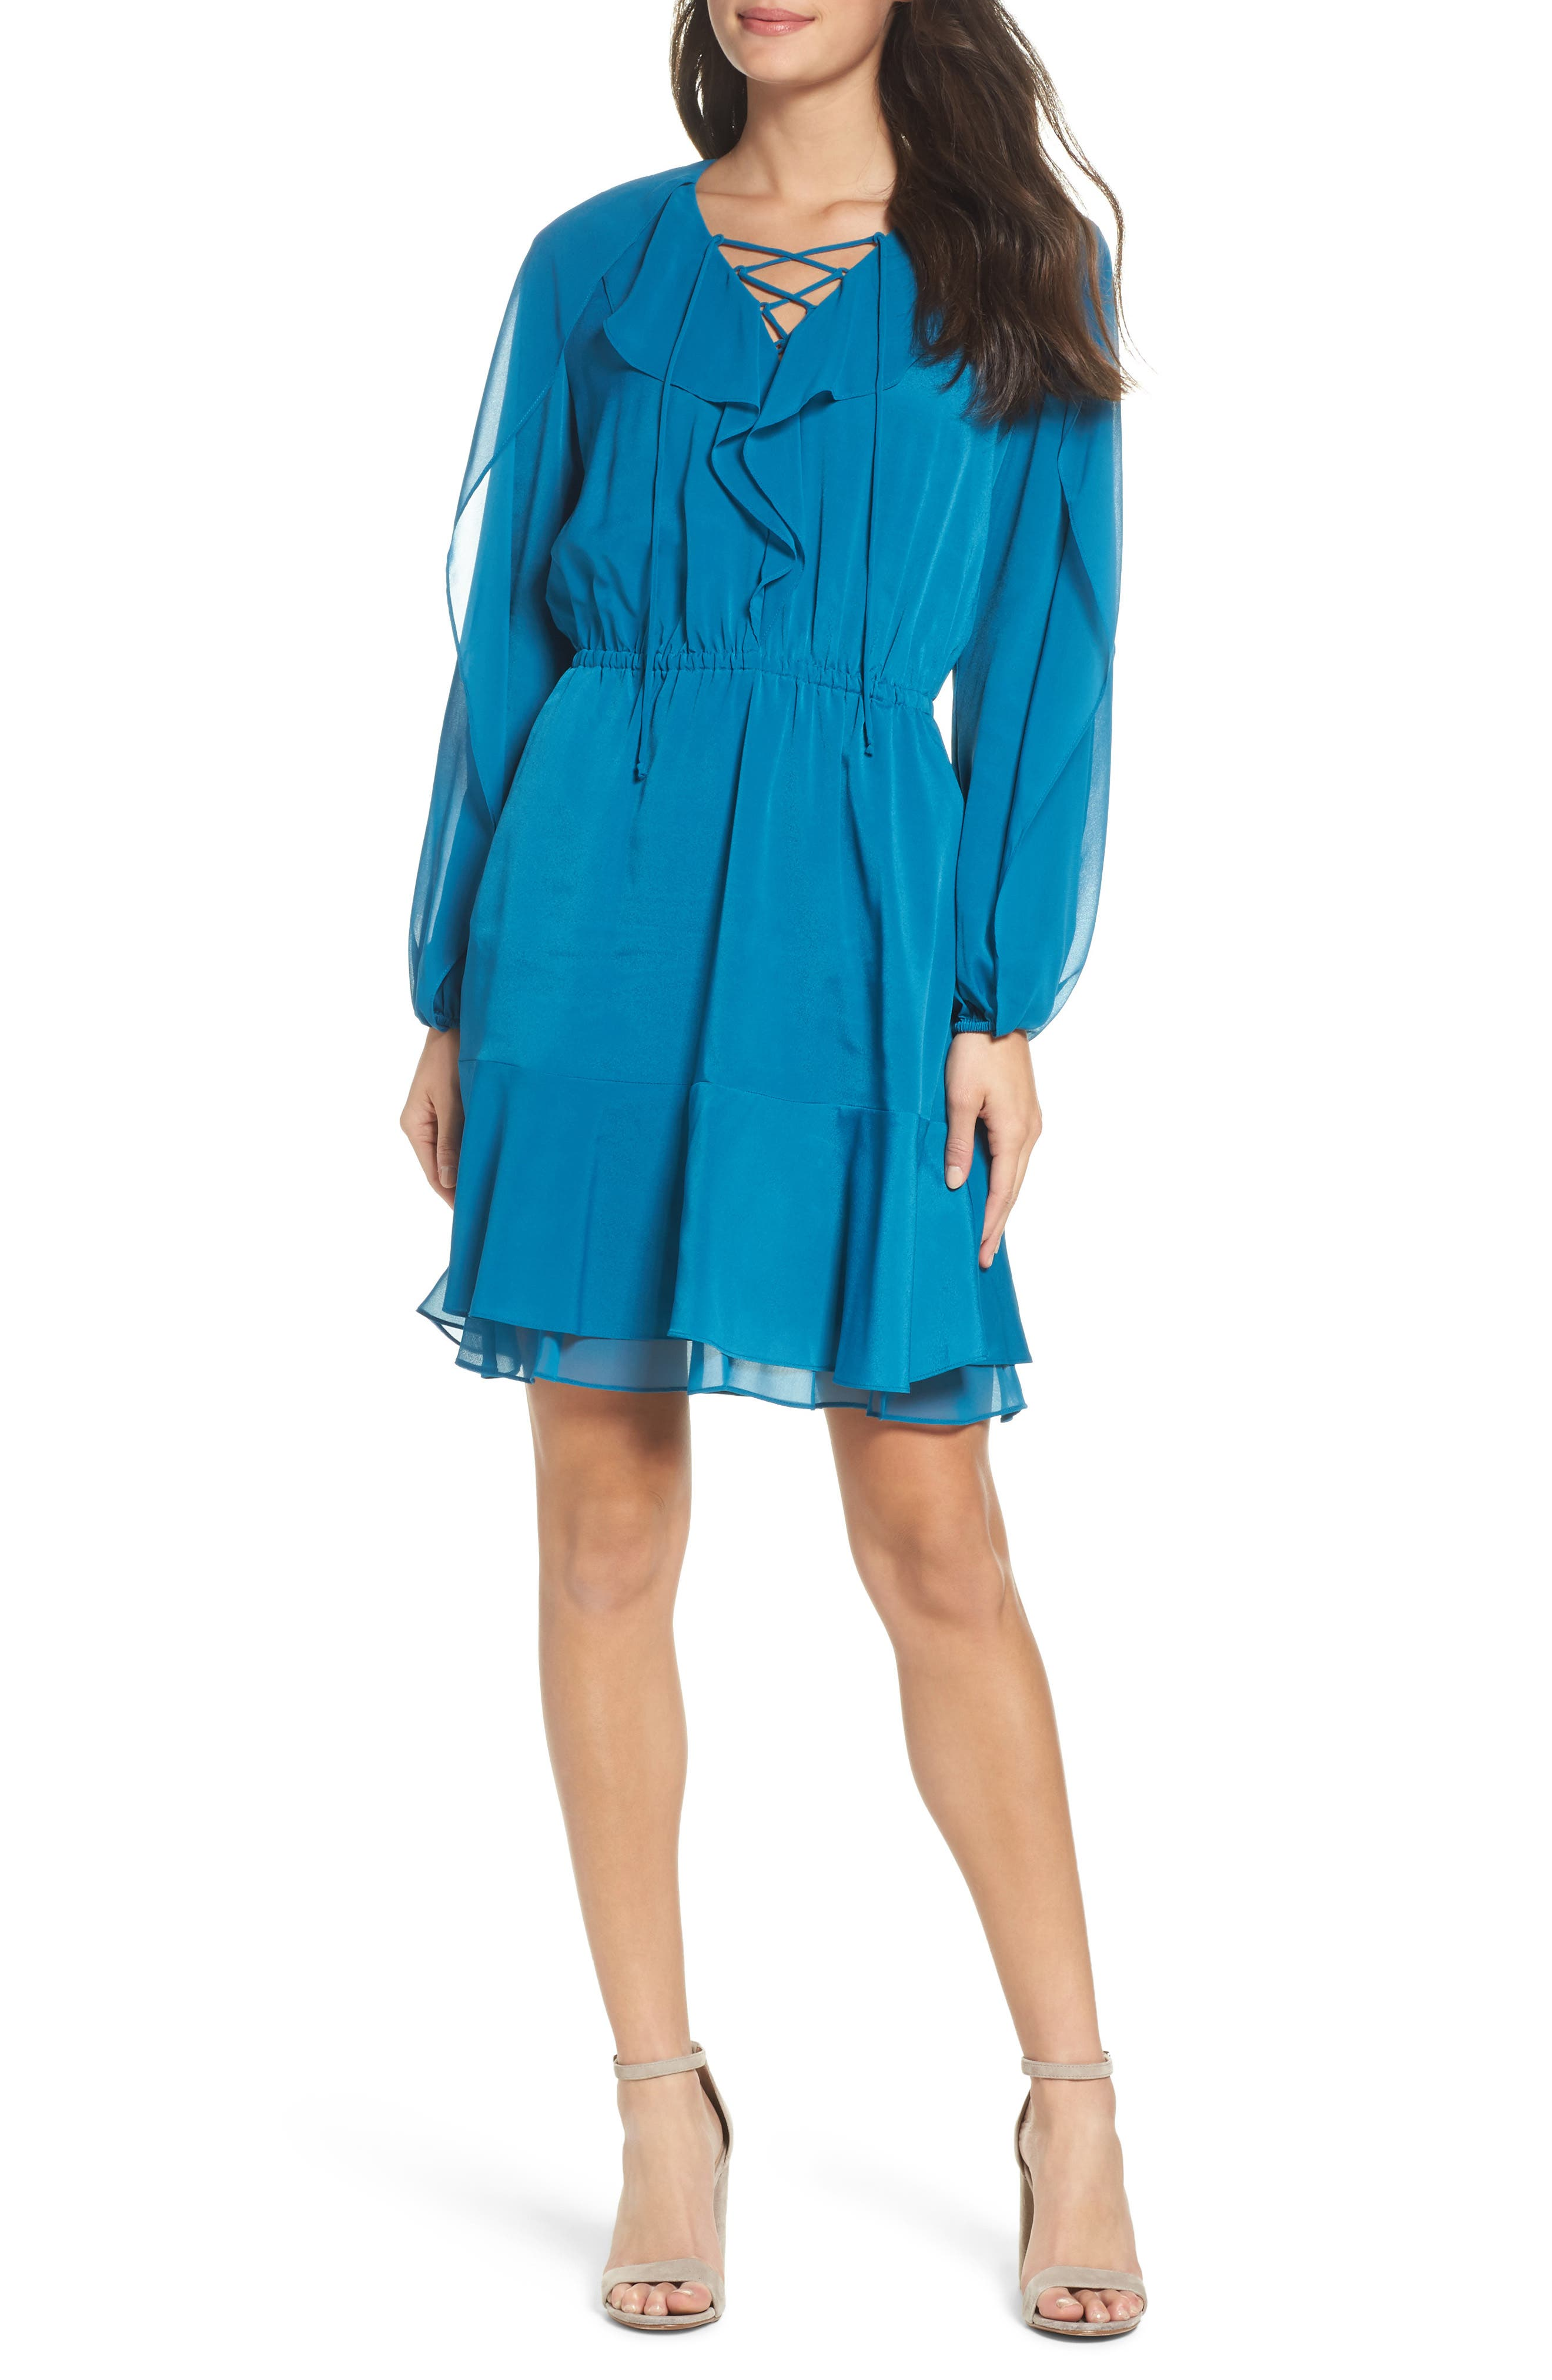 Alternate Image 1 Selected - Kobi Halperin Keely Ruffle Blouson Dress (Nordstrom Exclusive)